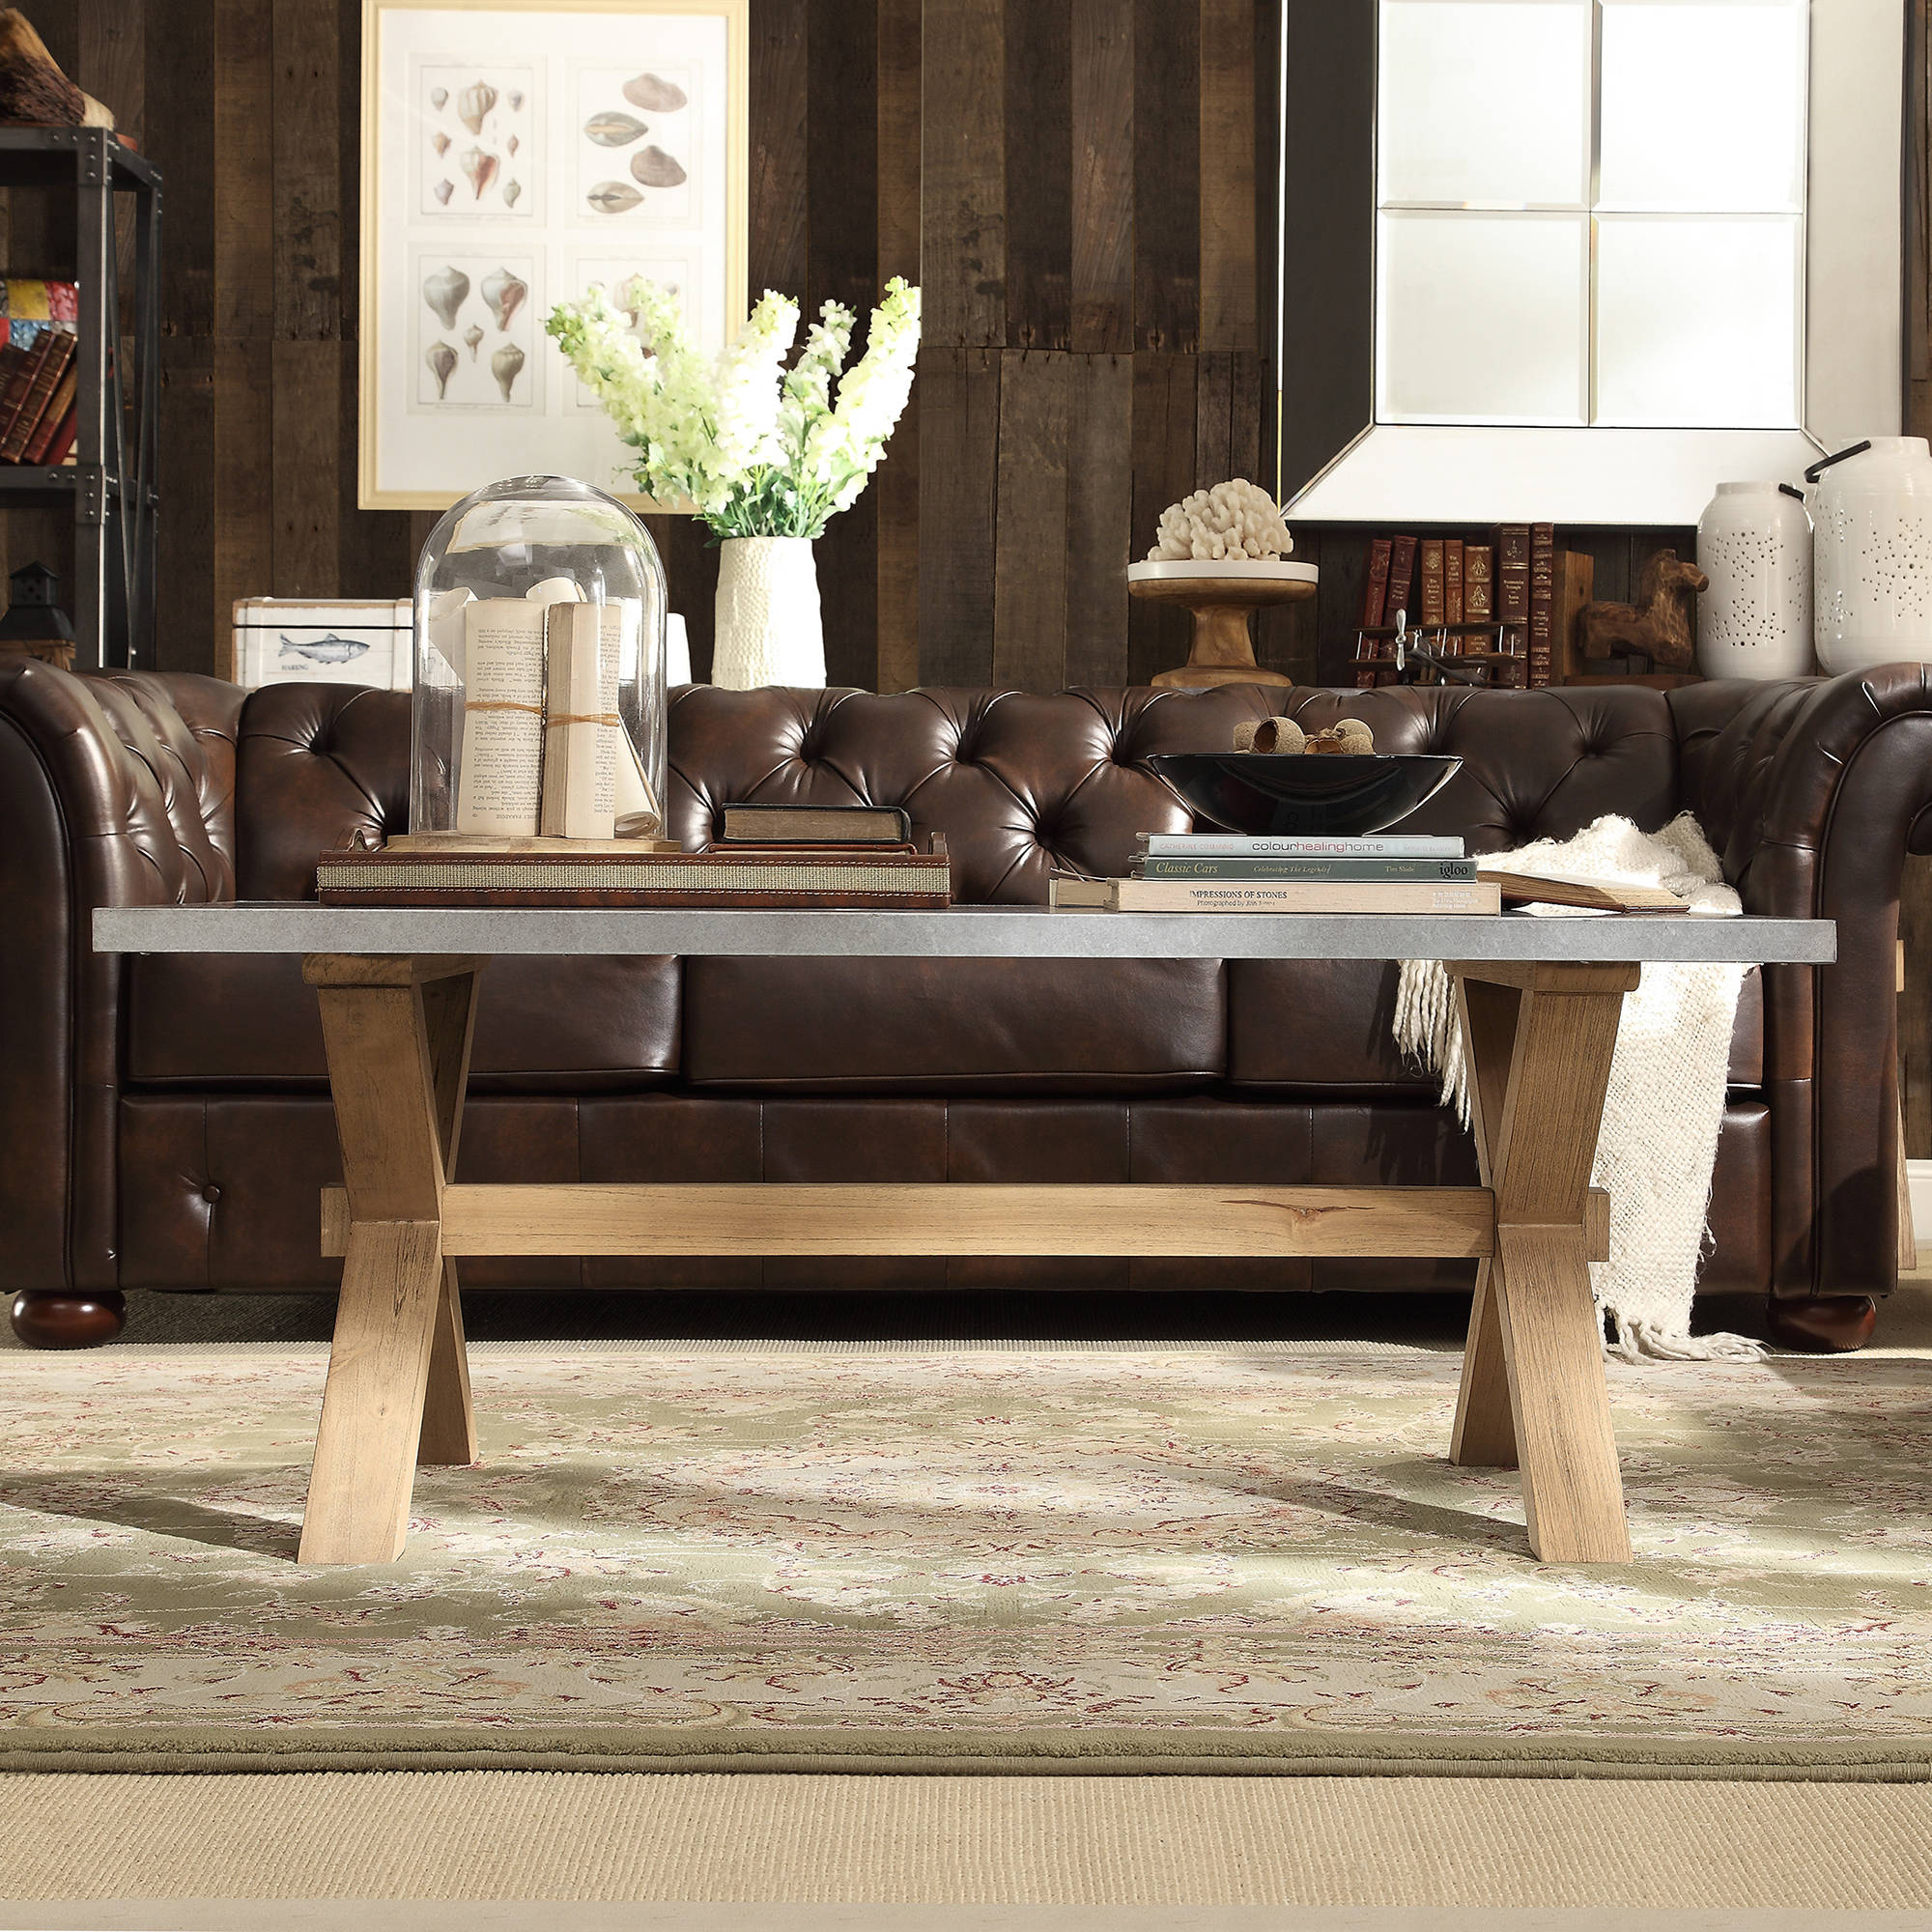 Chelsea Lane Wood and Concrete Cocktail Table, Light Brown Wood and Concrete by Overstock